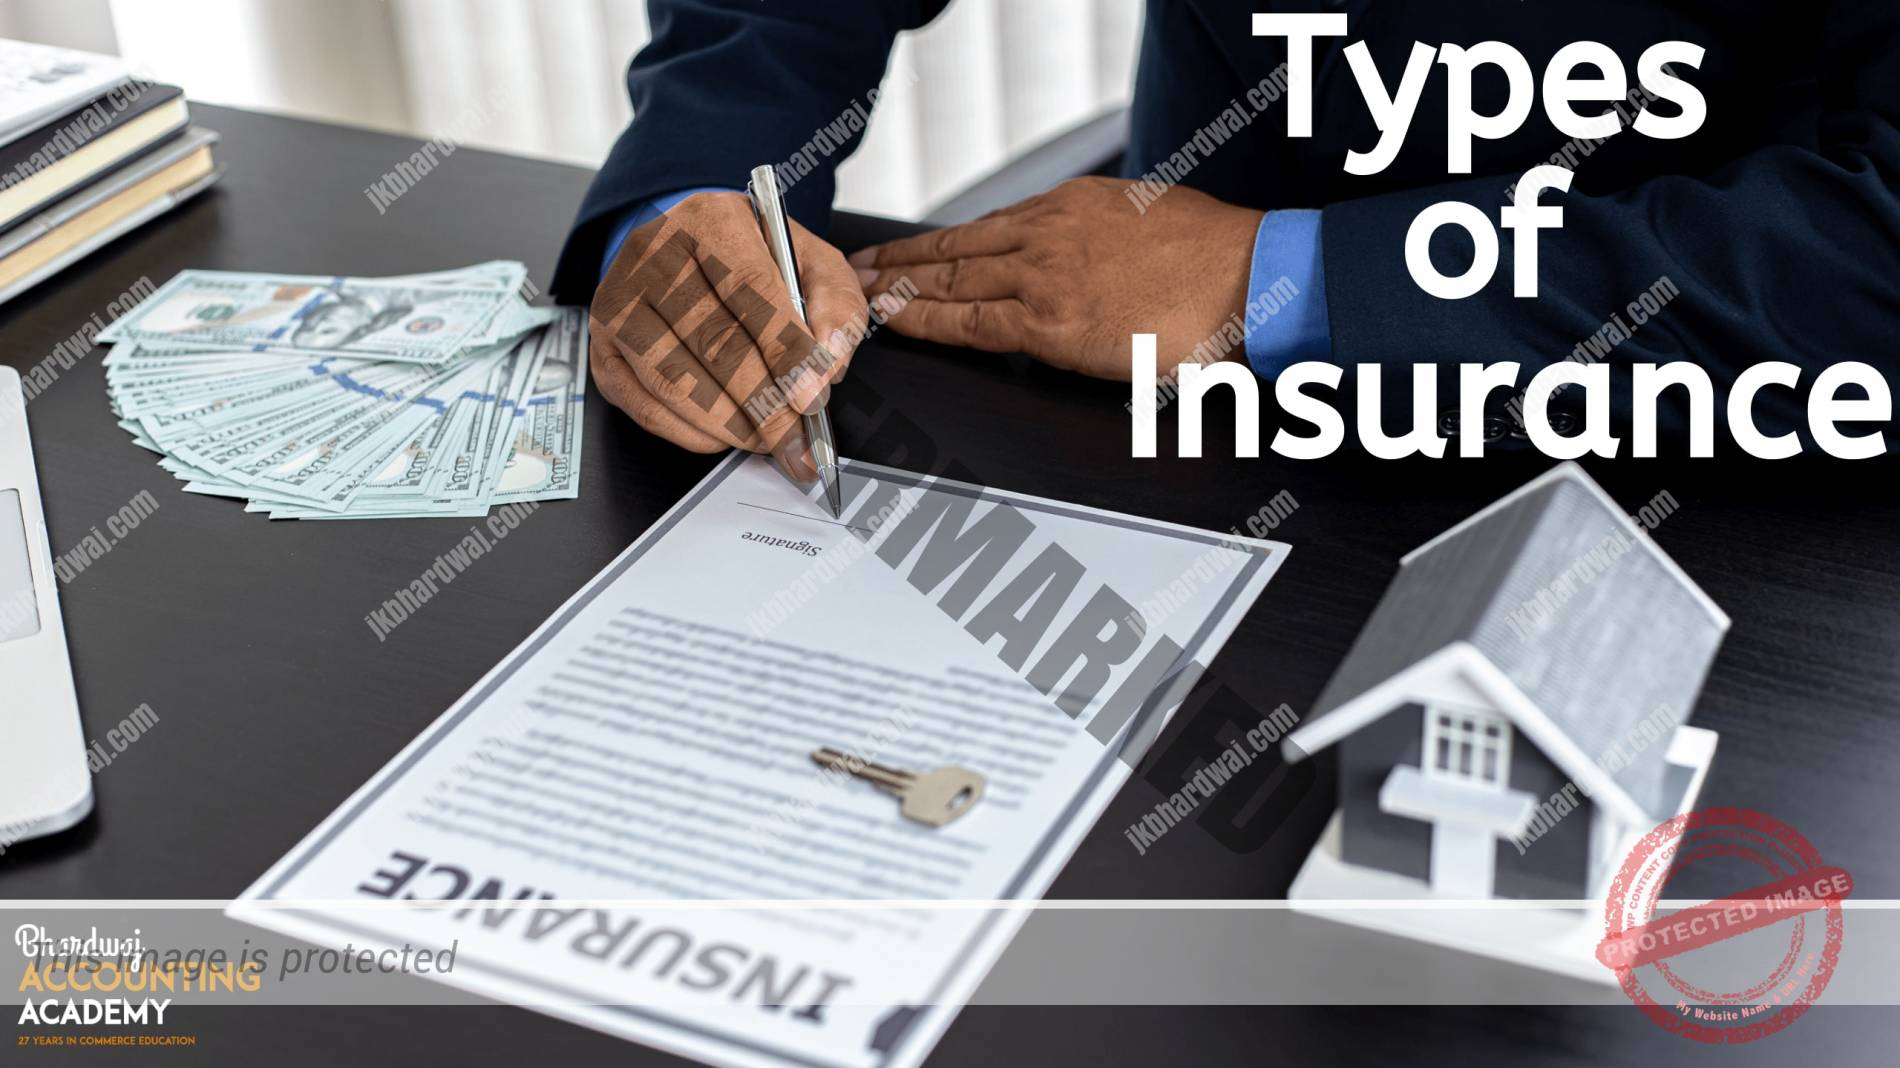 Tppes of Insurance